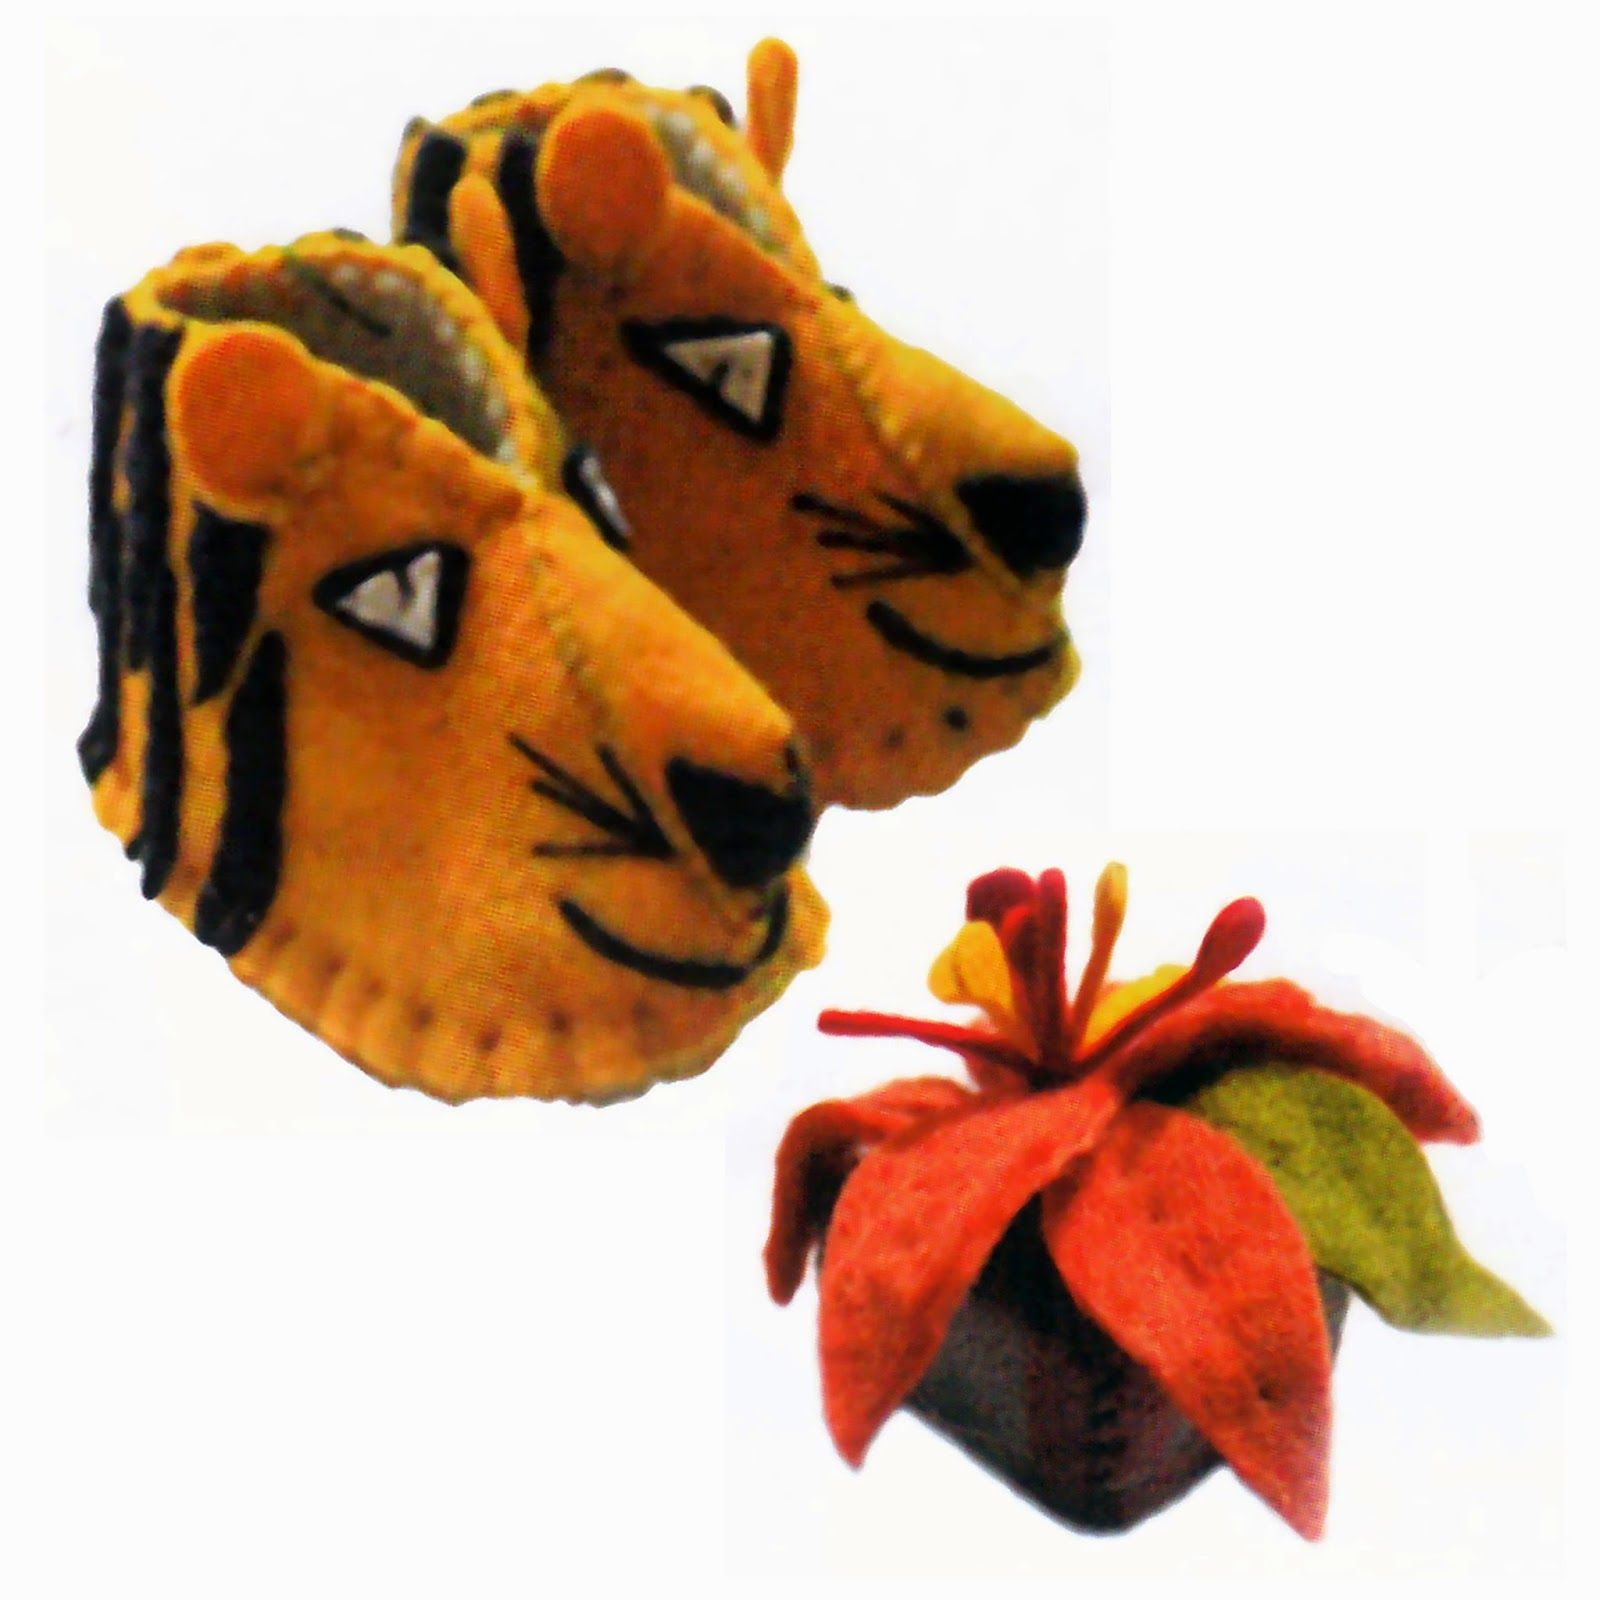 Zooties (felt baby booties) & Felt Soaps - Kork: Fiber Art Group via Silk Road Bazaar | Touchstone Gallery